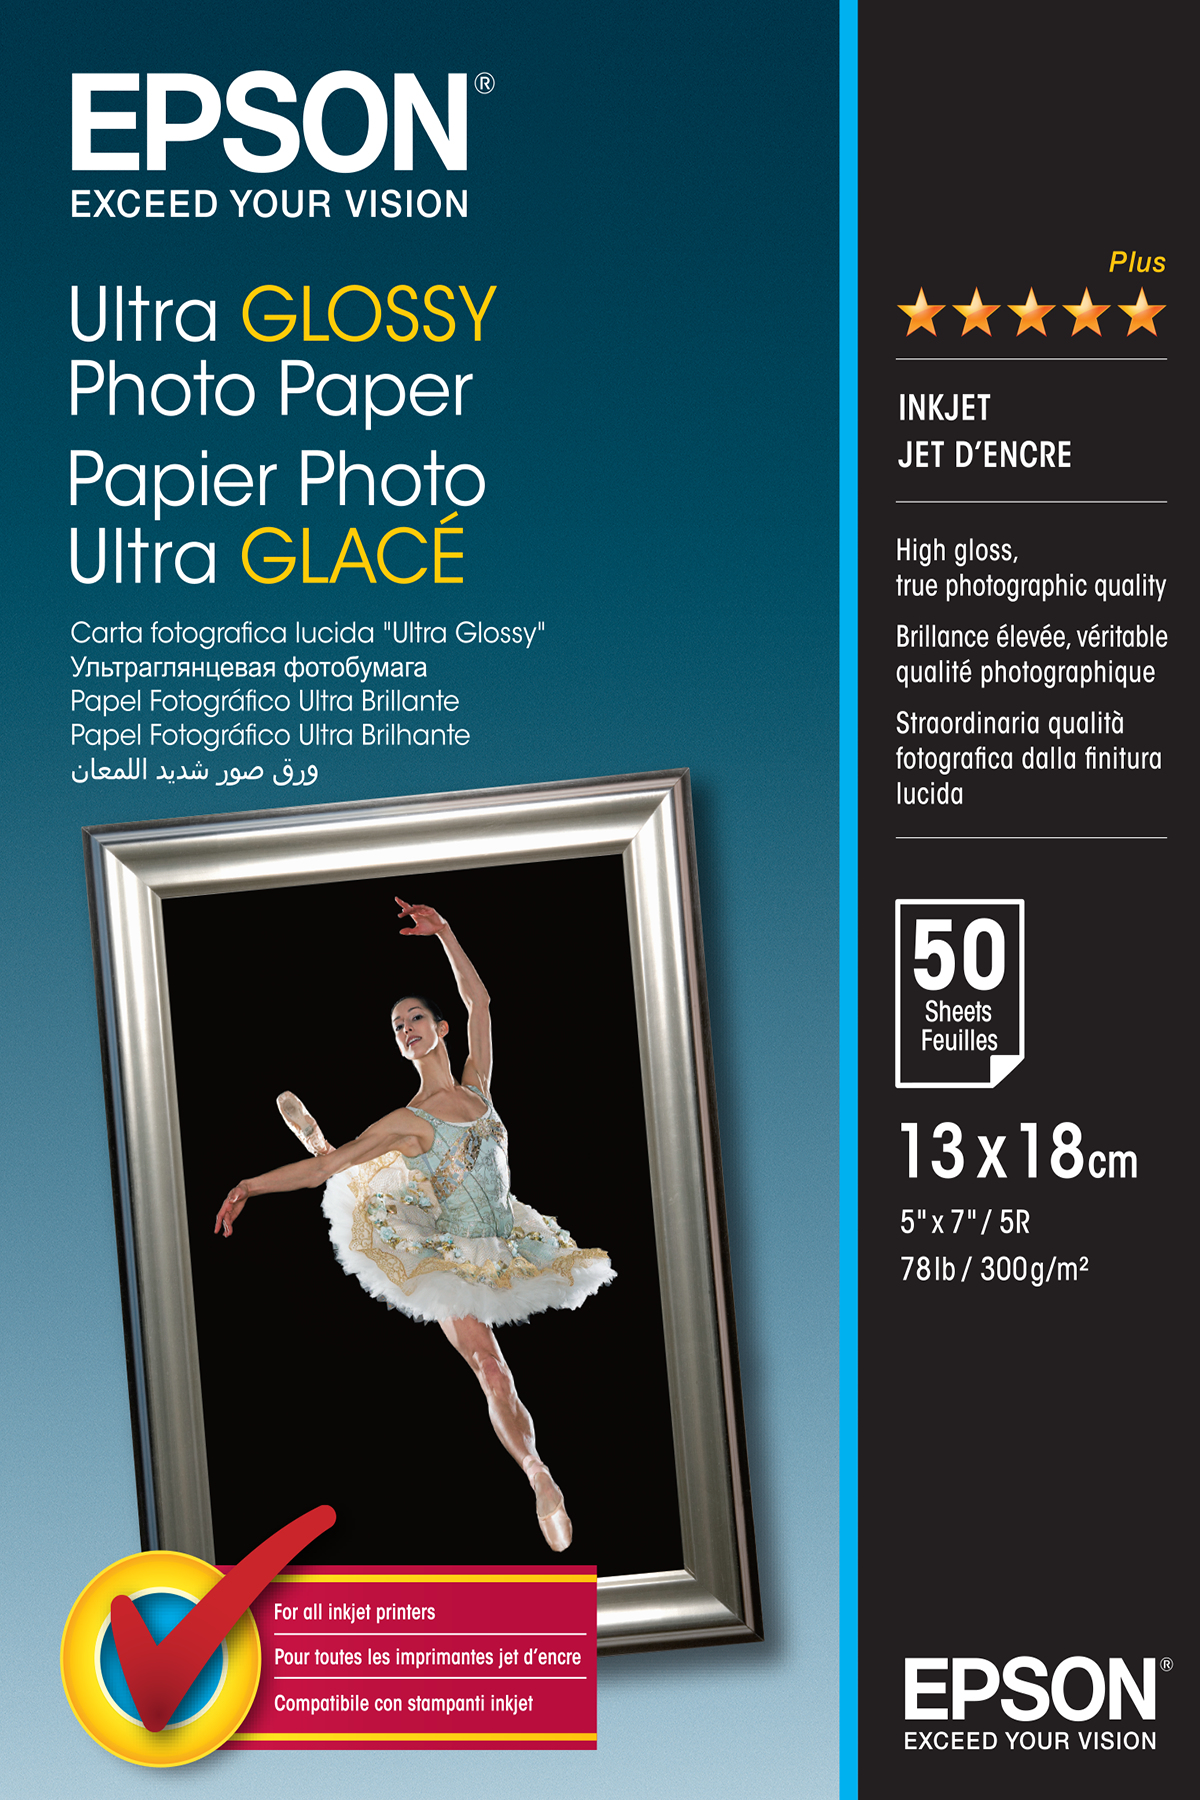 Ultra Glossy Photo Paper 13x18 50sh C13s041944 - WC01